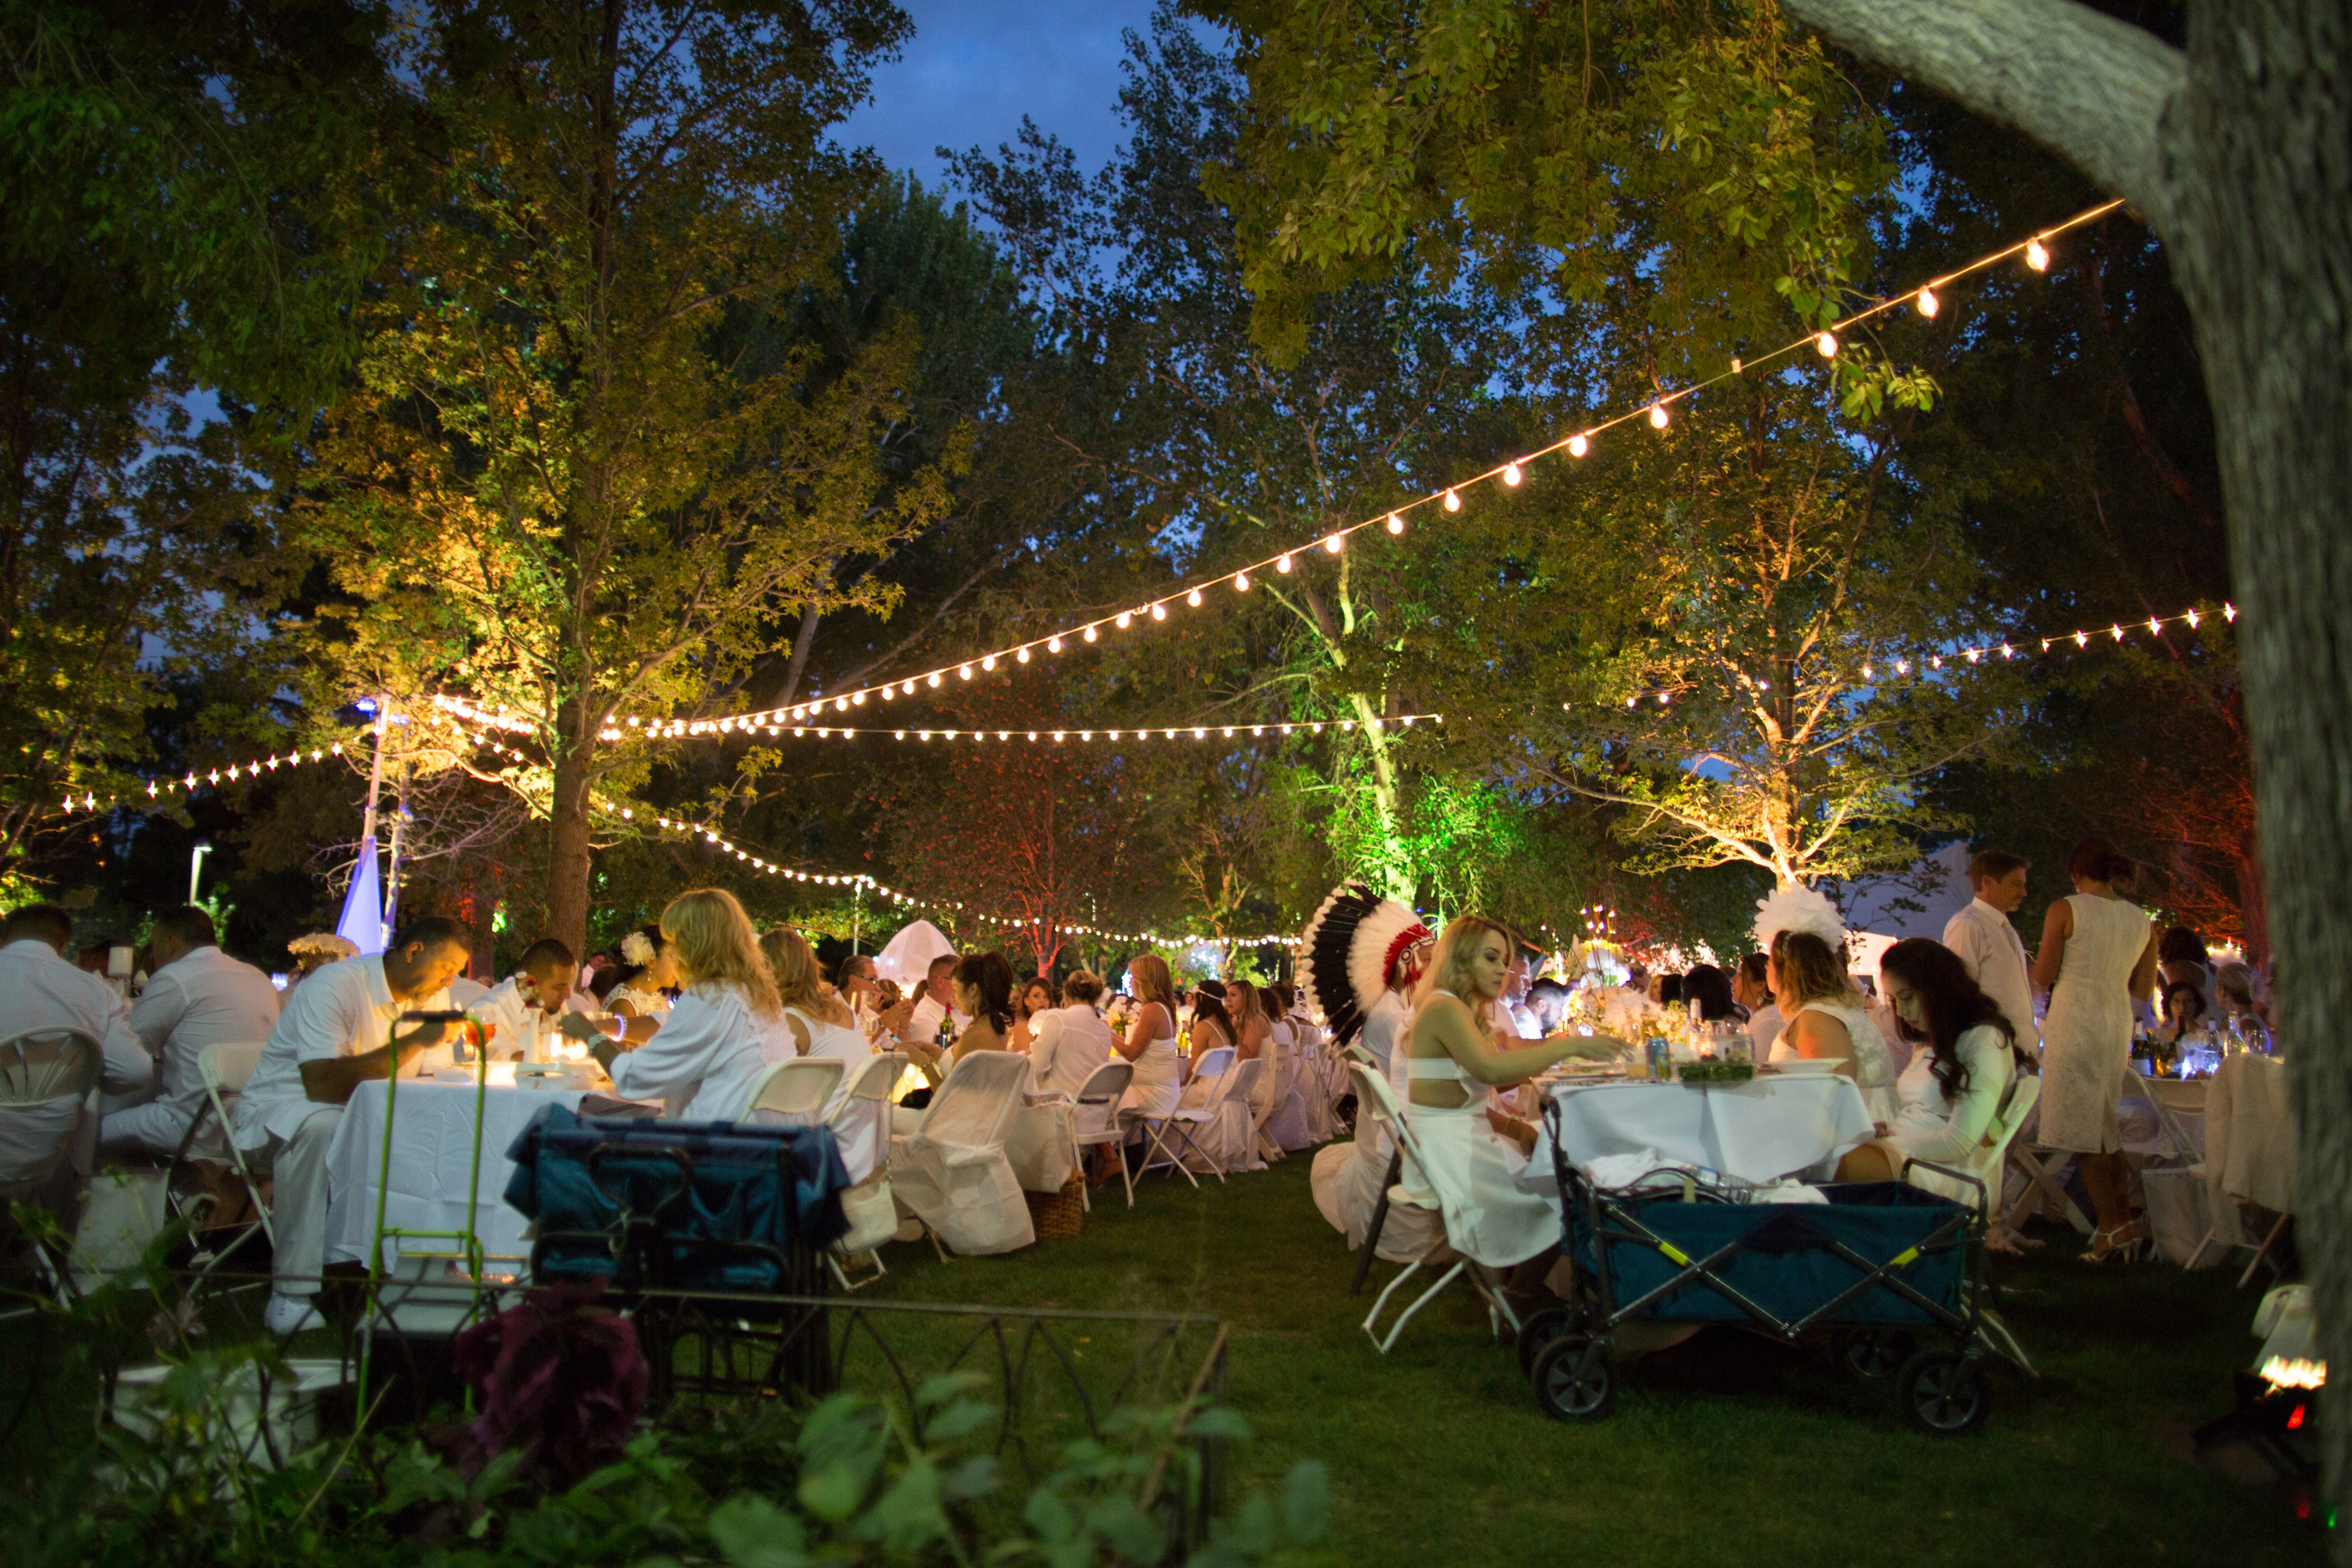 Jericha Brown, Perfect Wedding Guide – Perfect Wedding Guide Blog